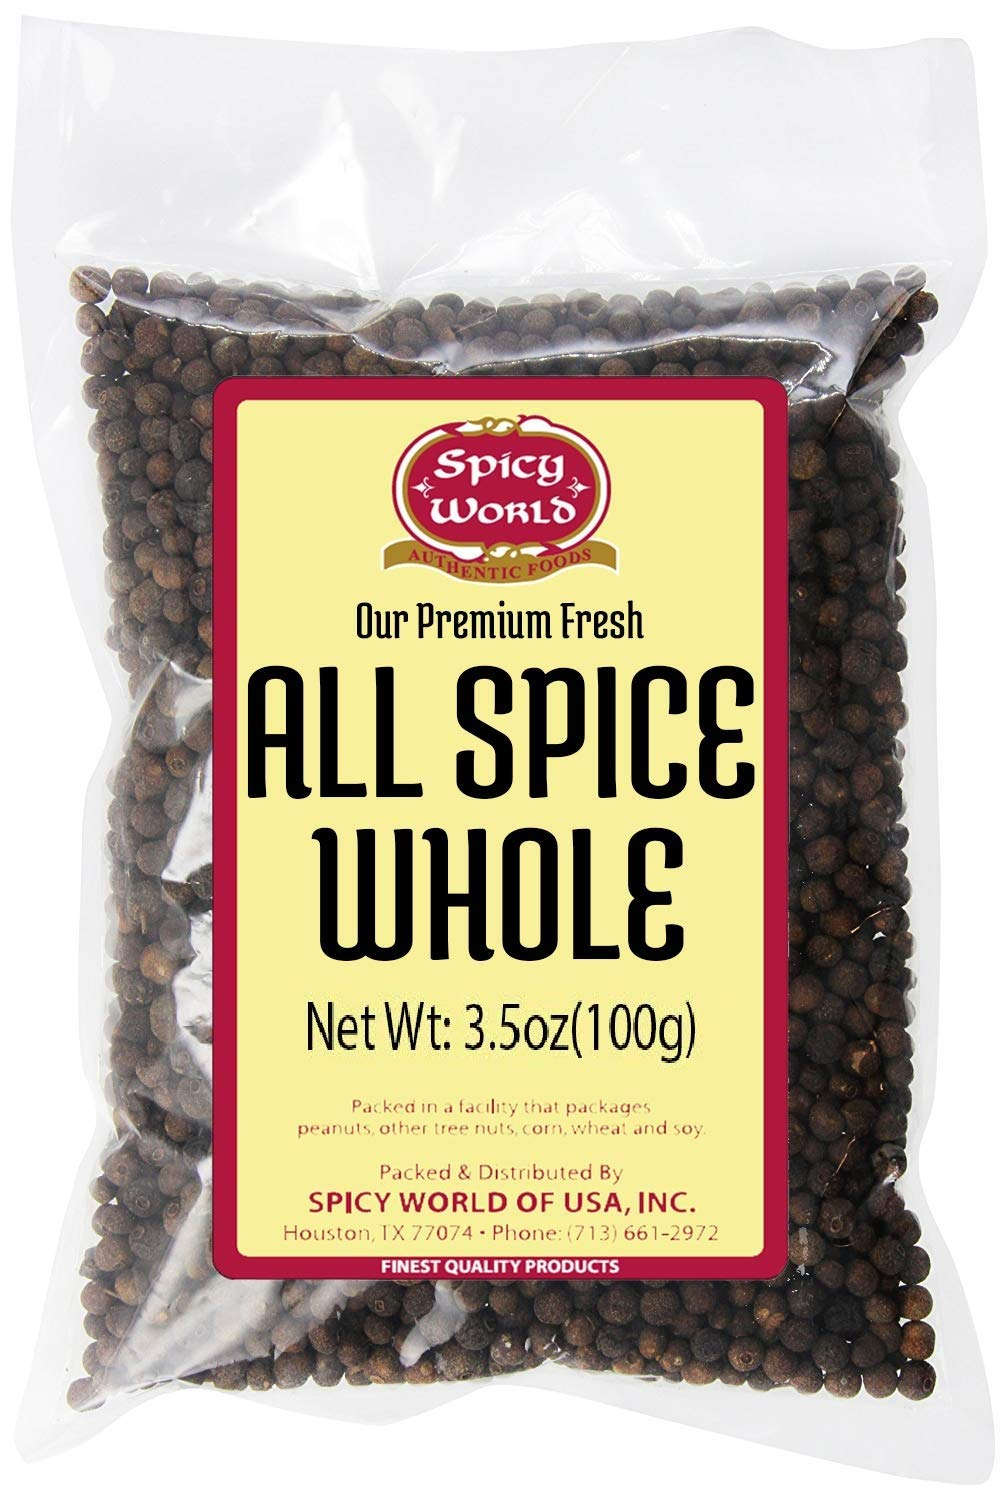 Allspice Whole Berries 3.5 Ounce Bag - by Spicy World (All Spice)